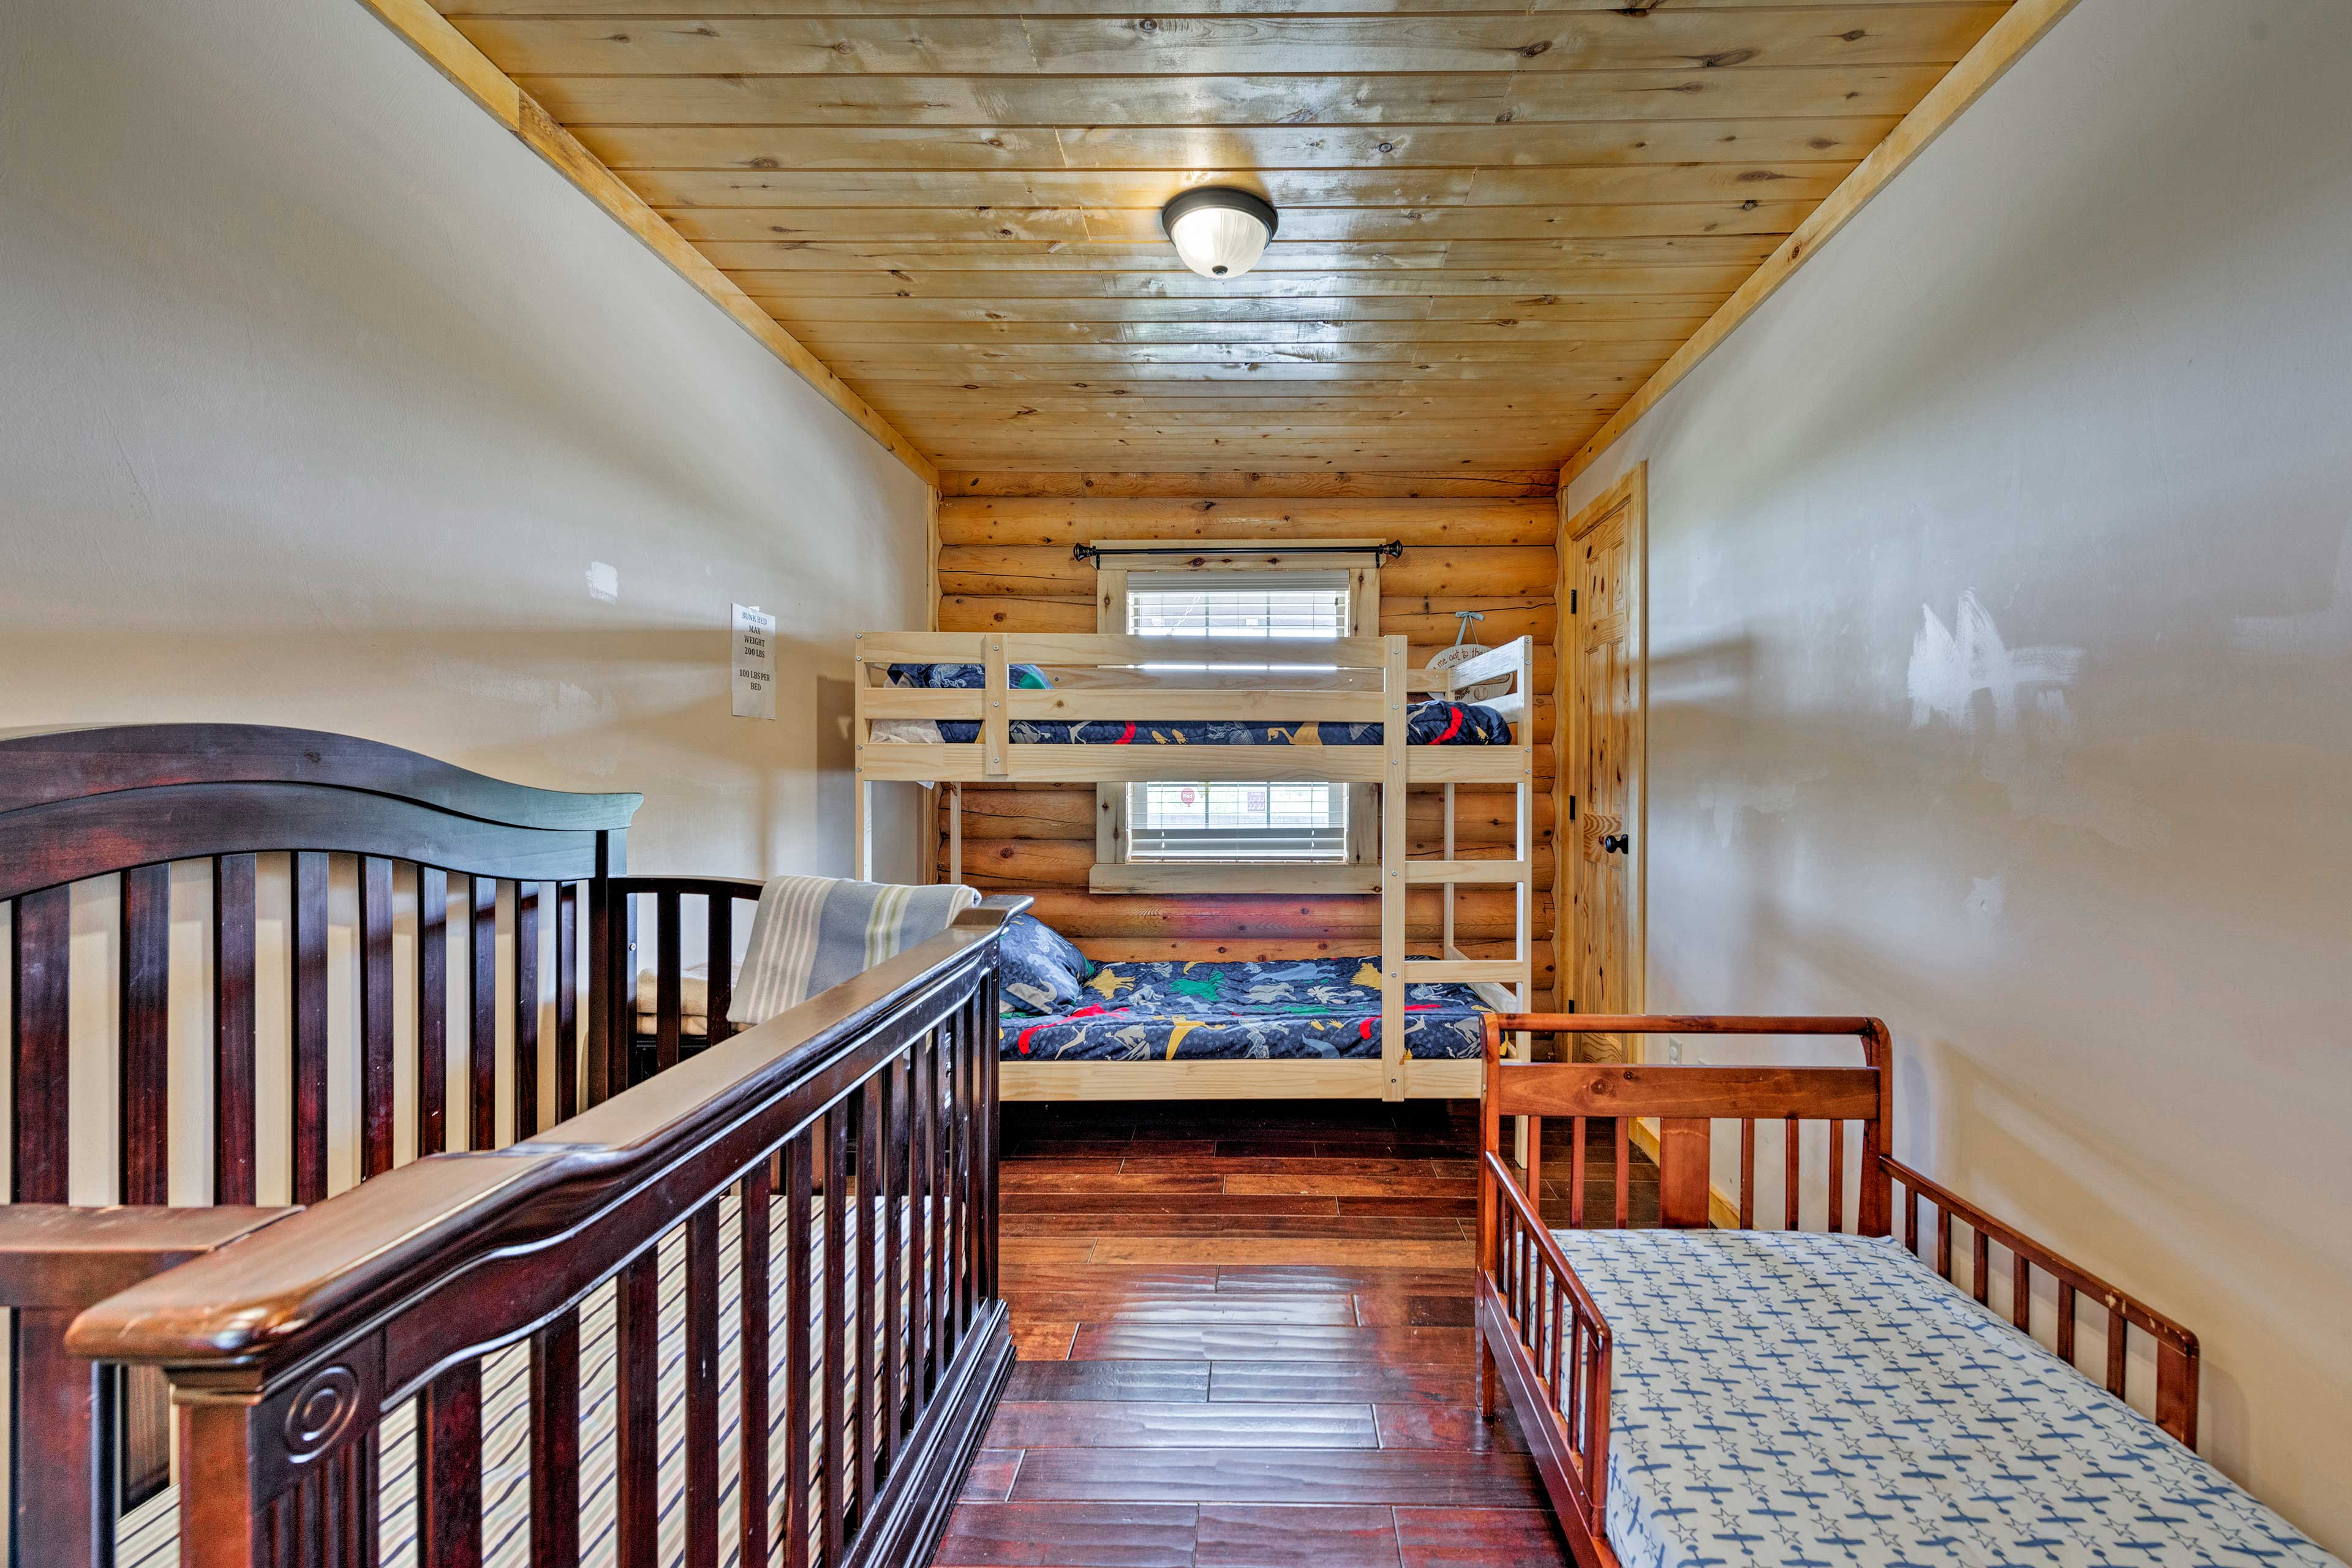 This room is ideal for families, with 2 cribs and a twin bunk bed.